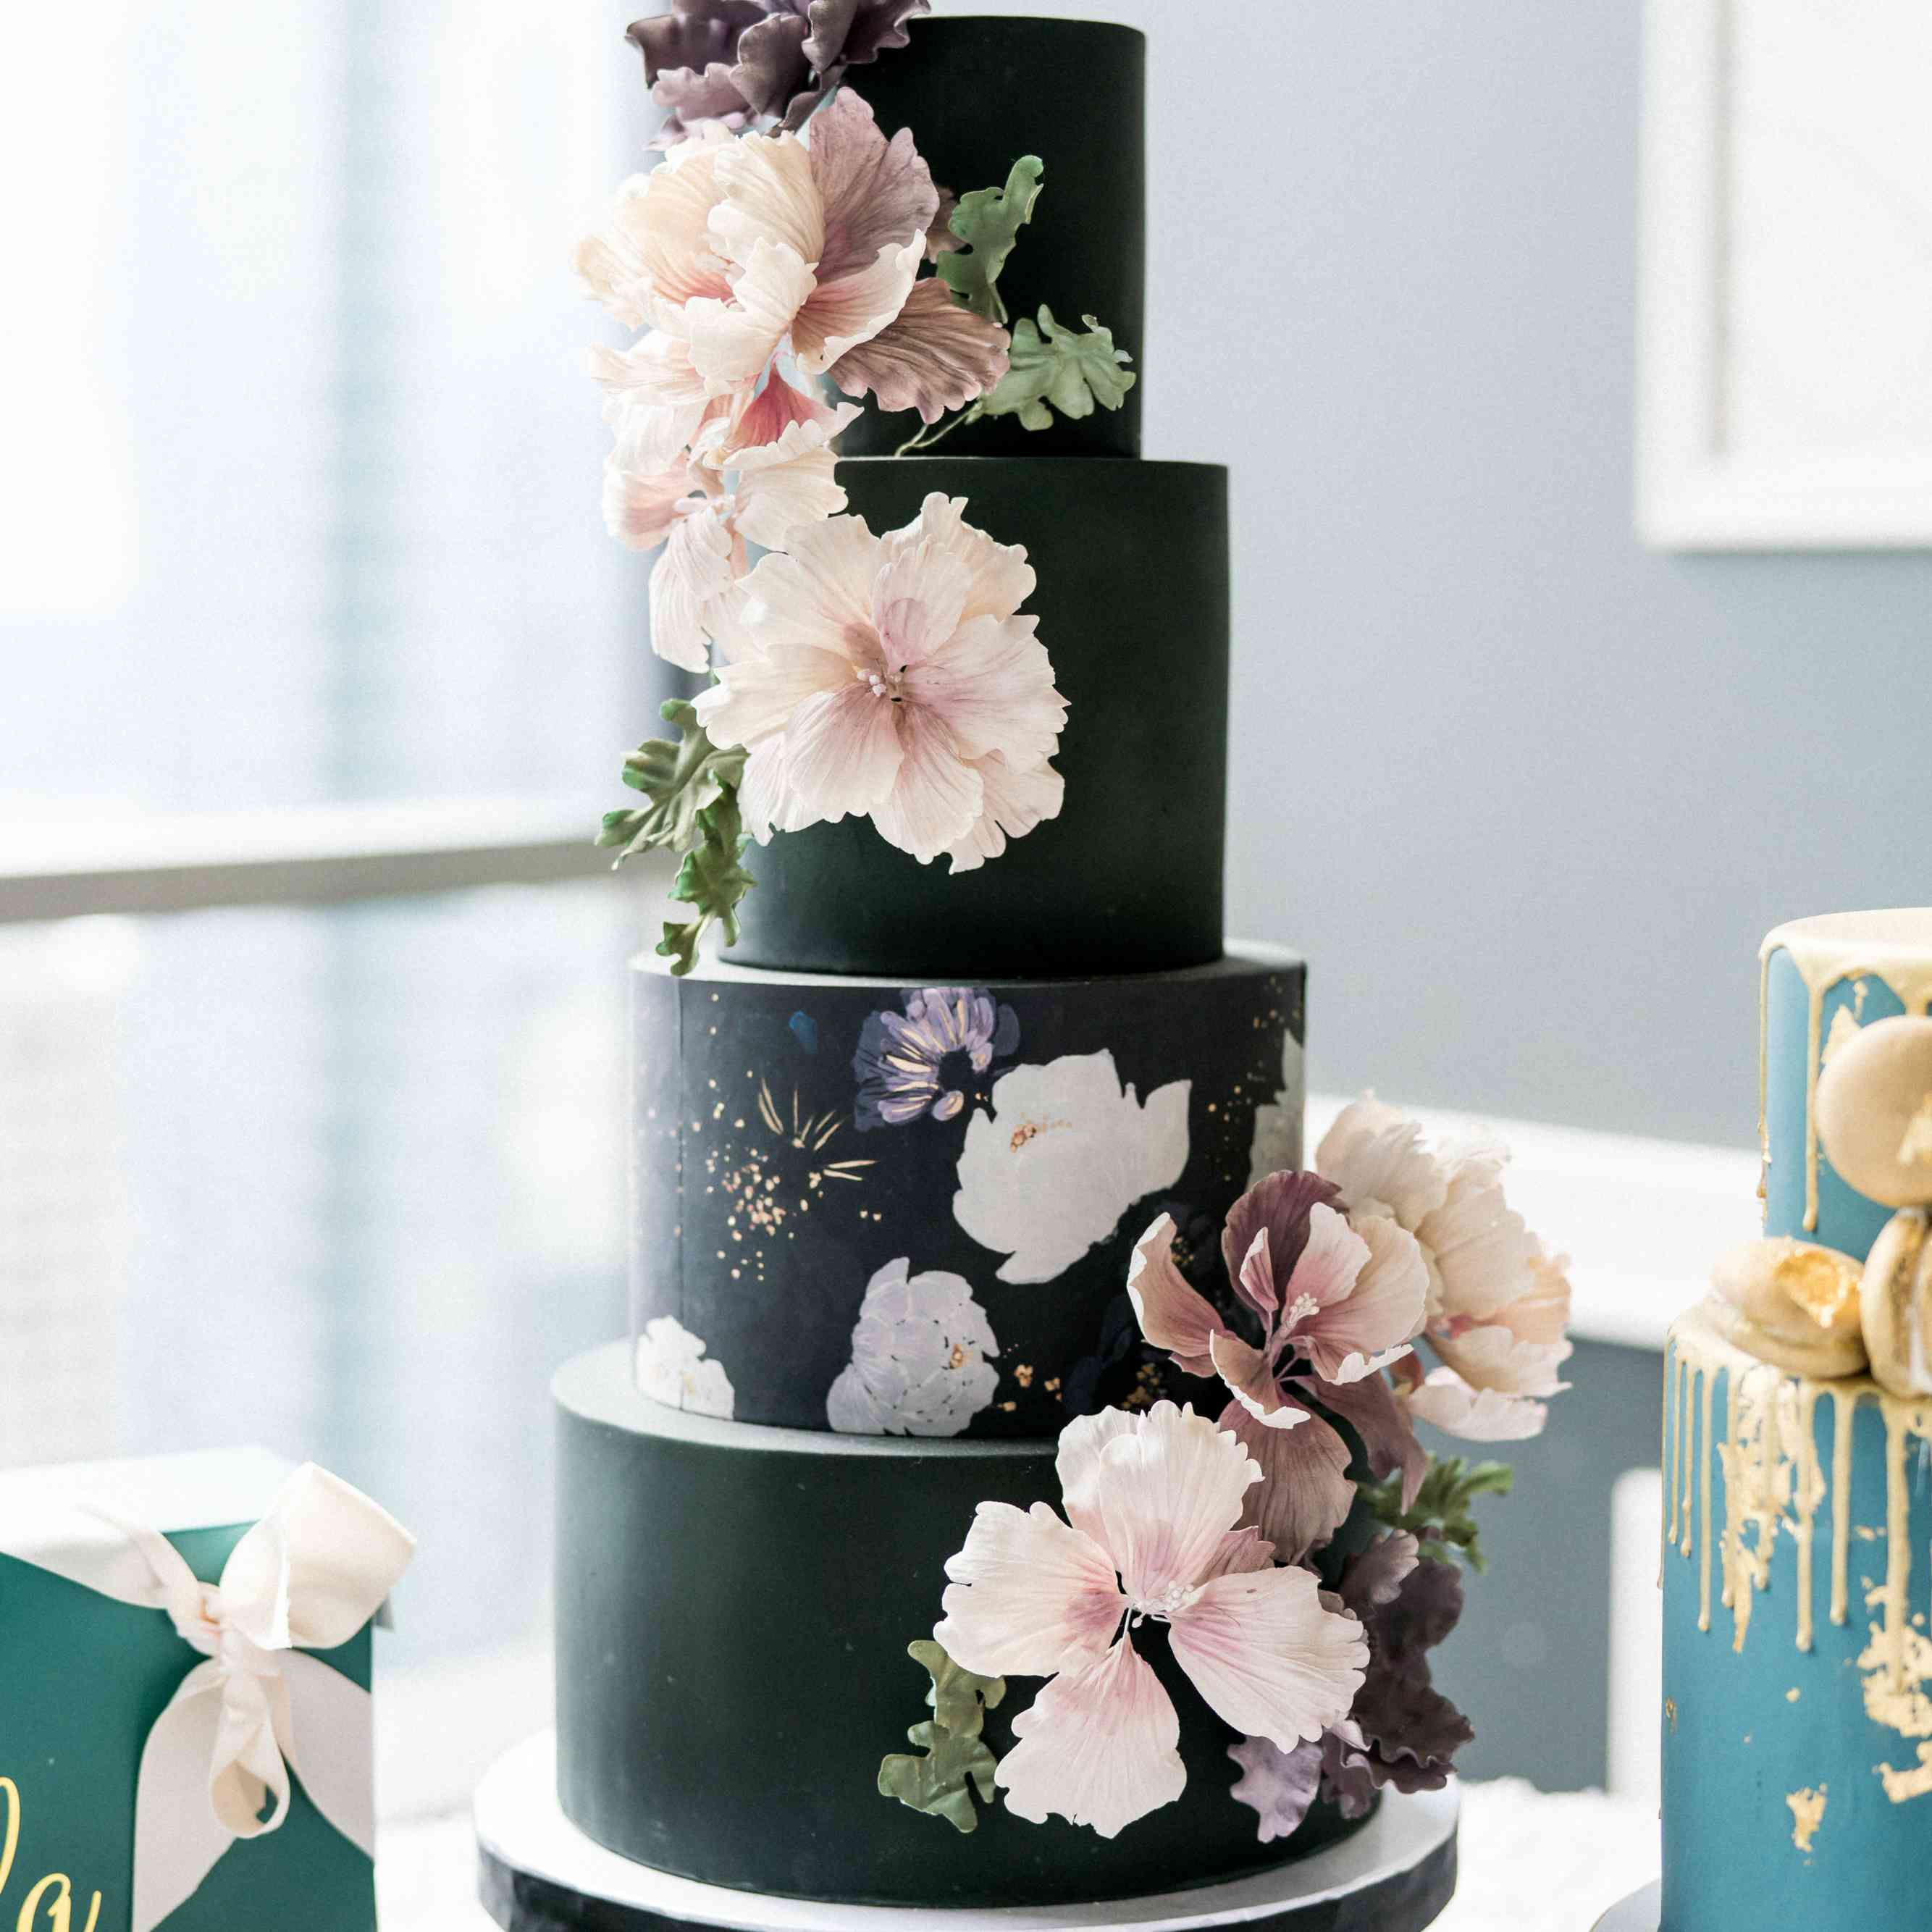 Red And Black Wedding Cakes Ideas: 85 Of The Prettiest Floral Wedding Cakes